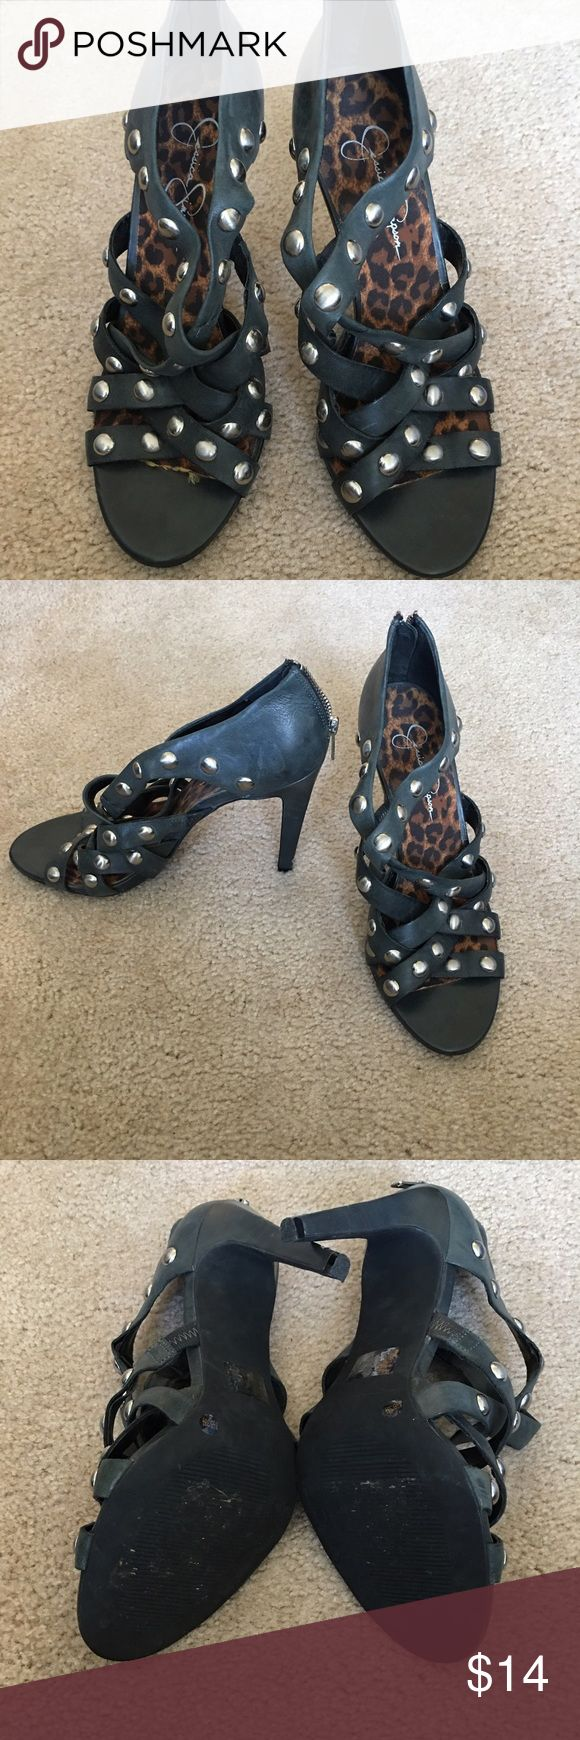 """Jessica Simpson heels Greenish-grey distressed 3.5"""" heels with metal beads. The straps are starting to separate due to the aging of the material from being in my closet - not do to heavy wear. Flaws are not noticeable when wearing. Price is reflective of condition, but still super cute heel worn only a few times. Jessica Simpson Shoes Heels"""